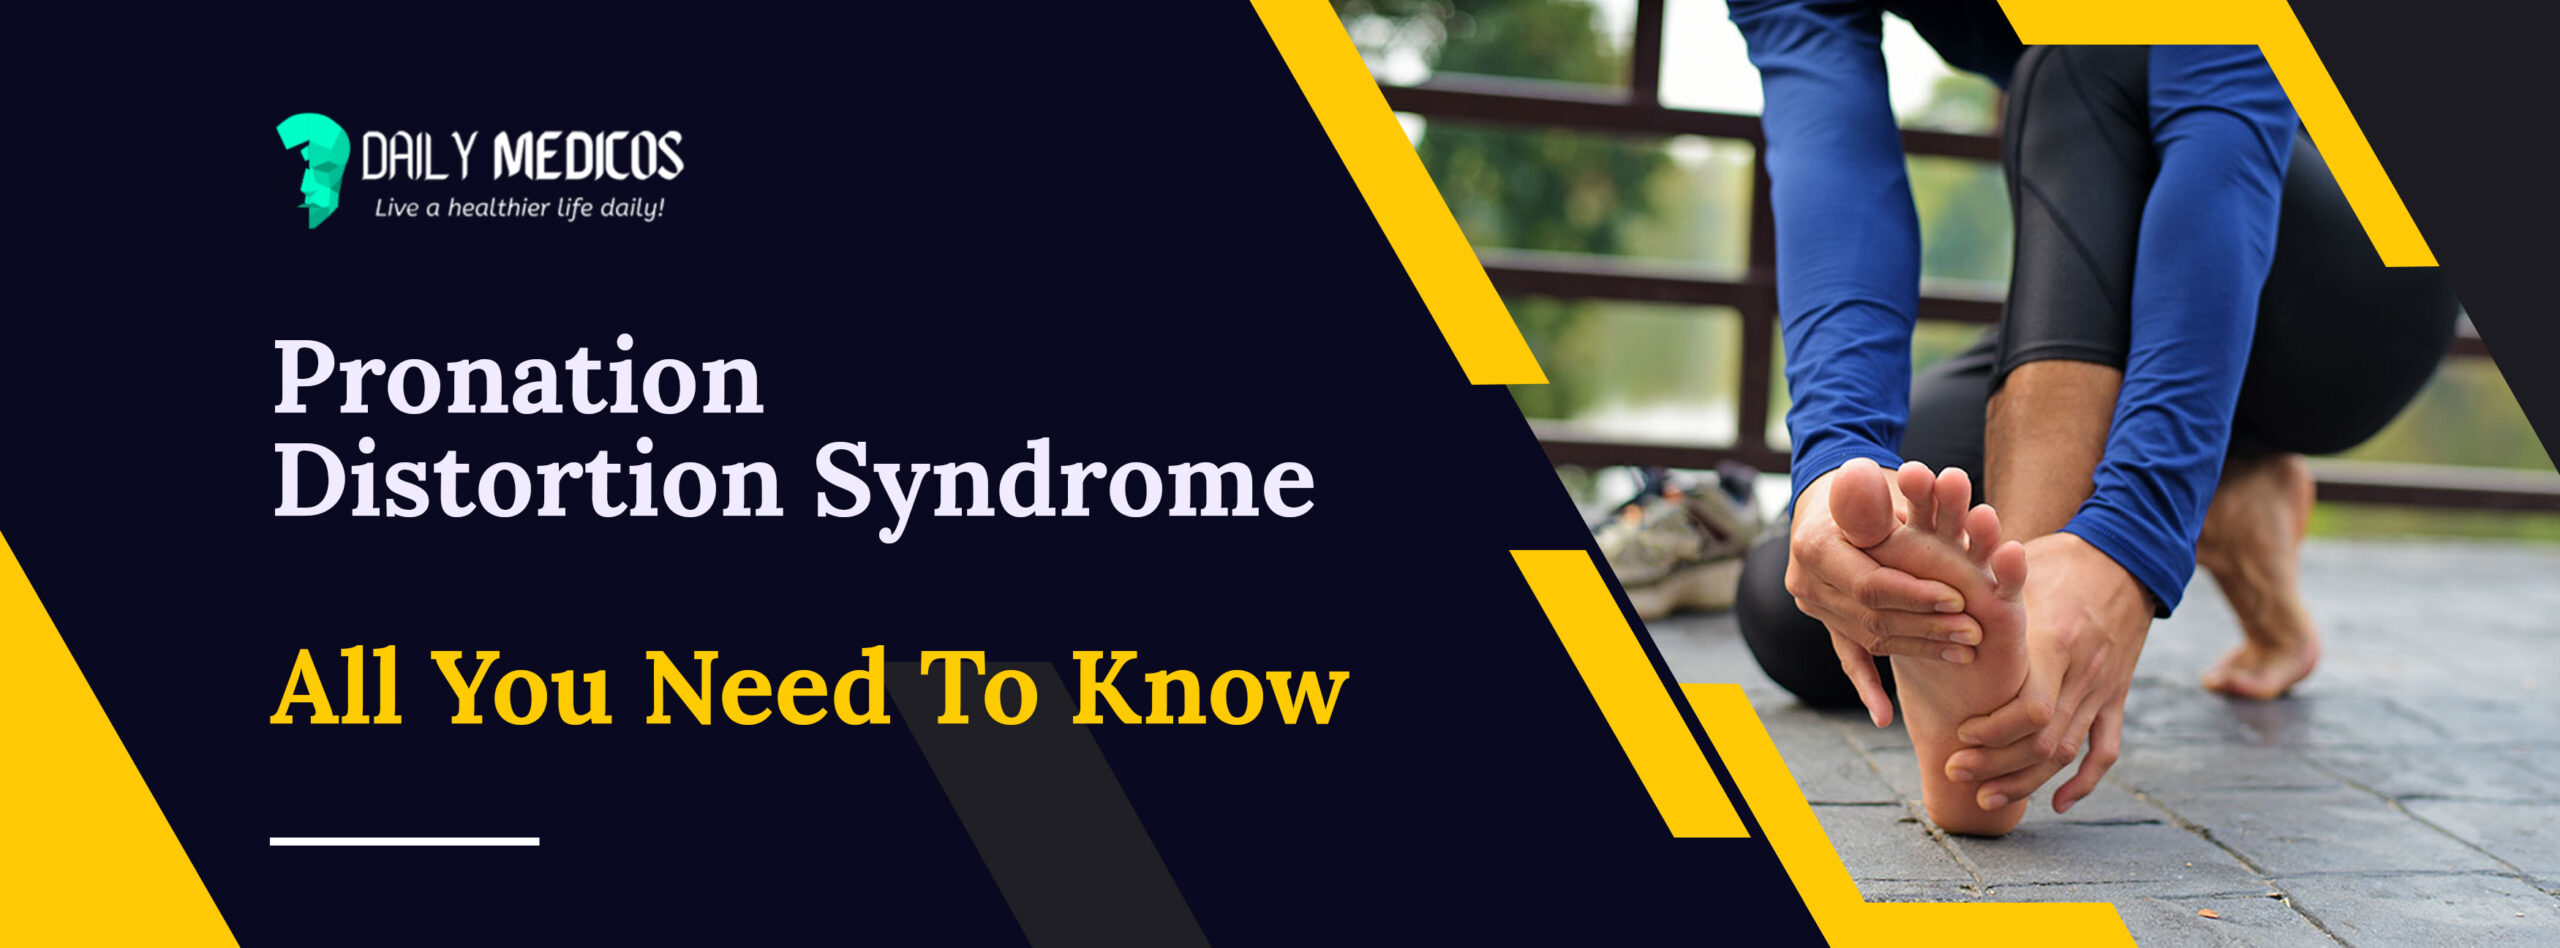 Pronation Distortion Syndrome: All You Need To Know 52 - Daily Medicos